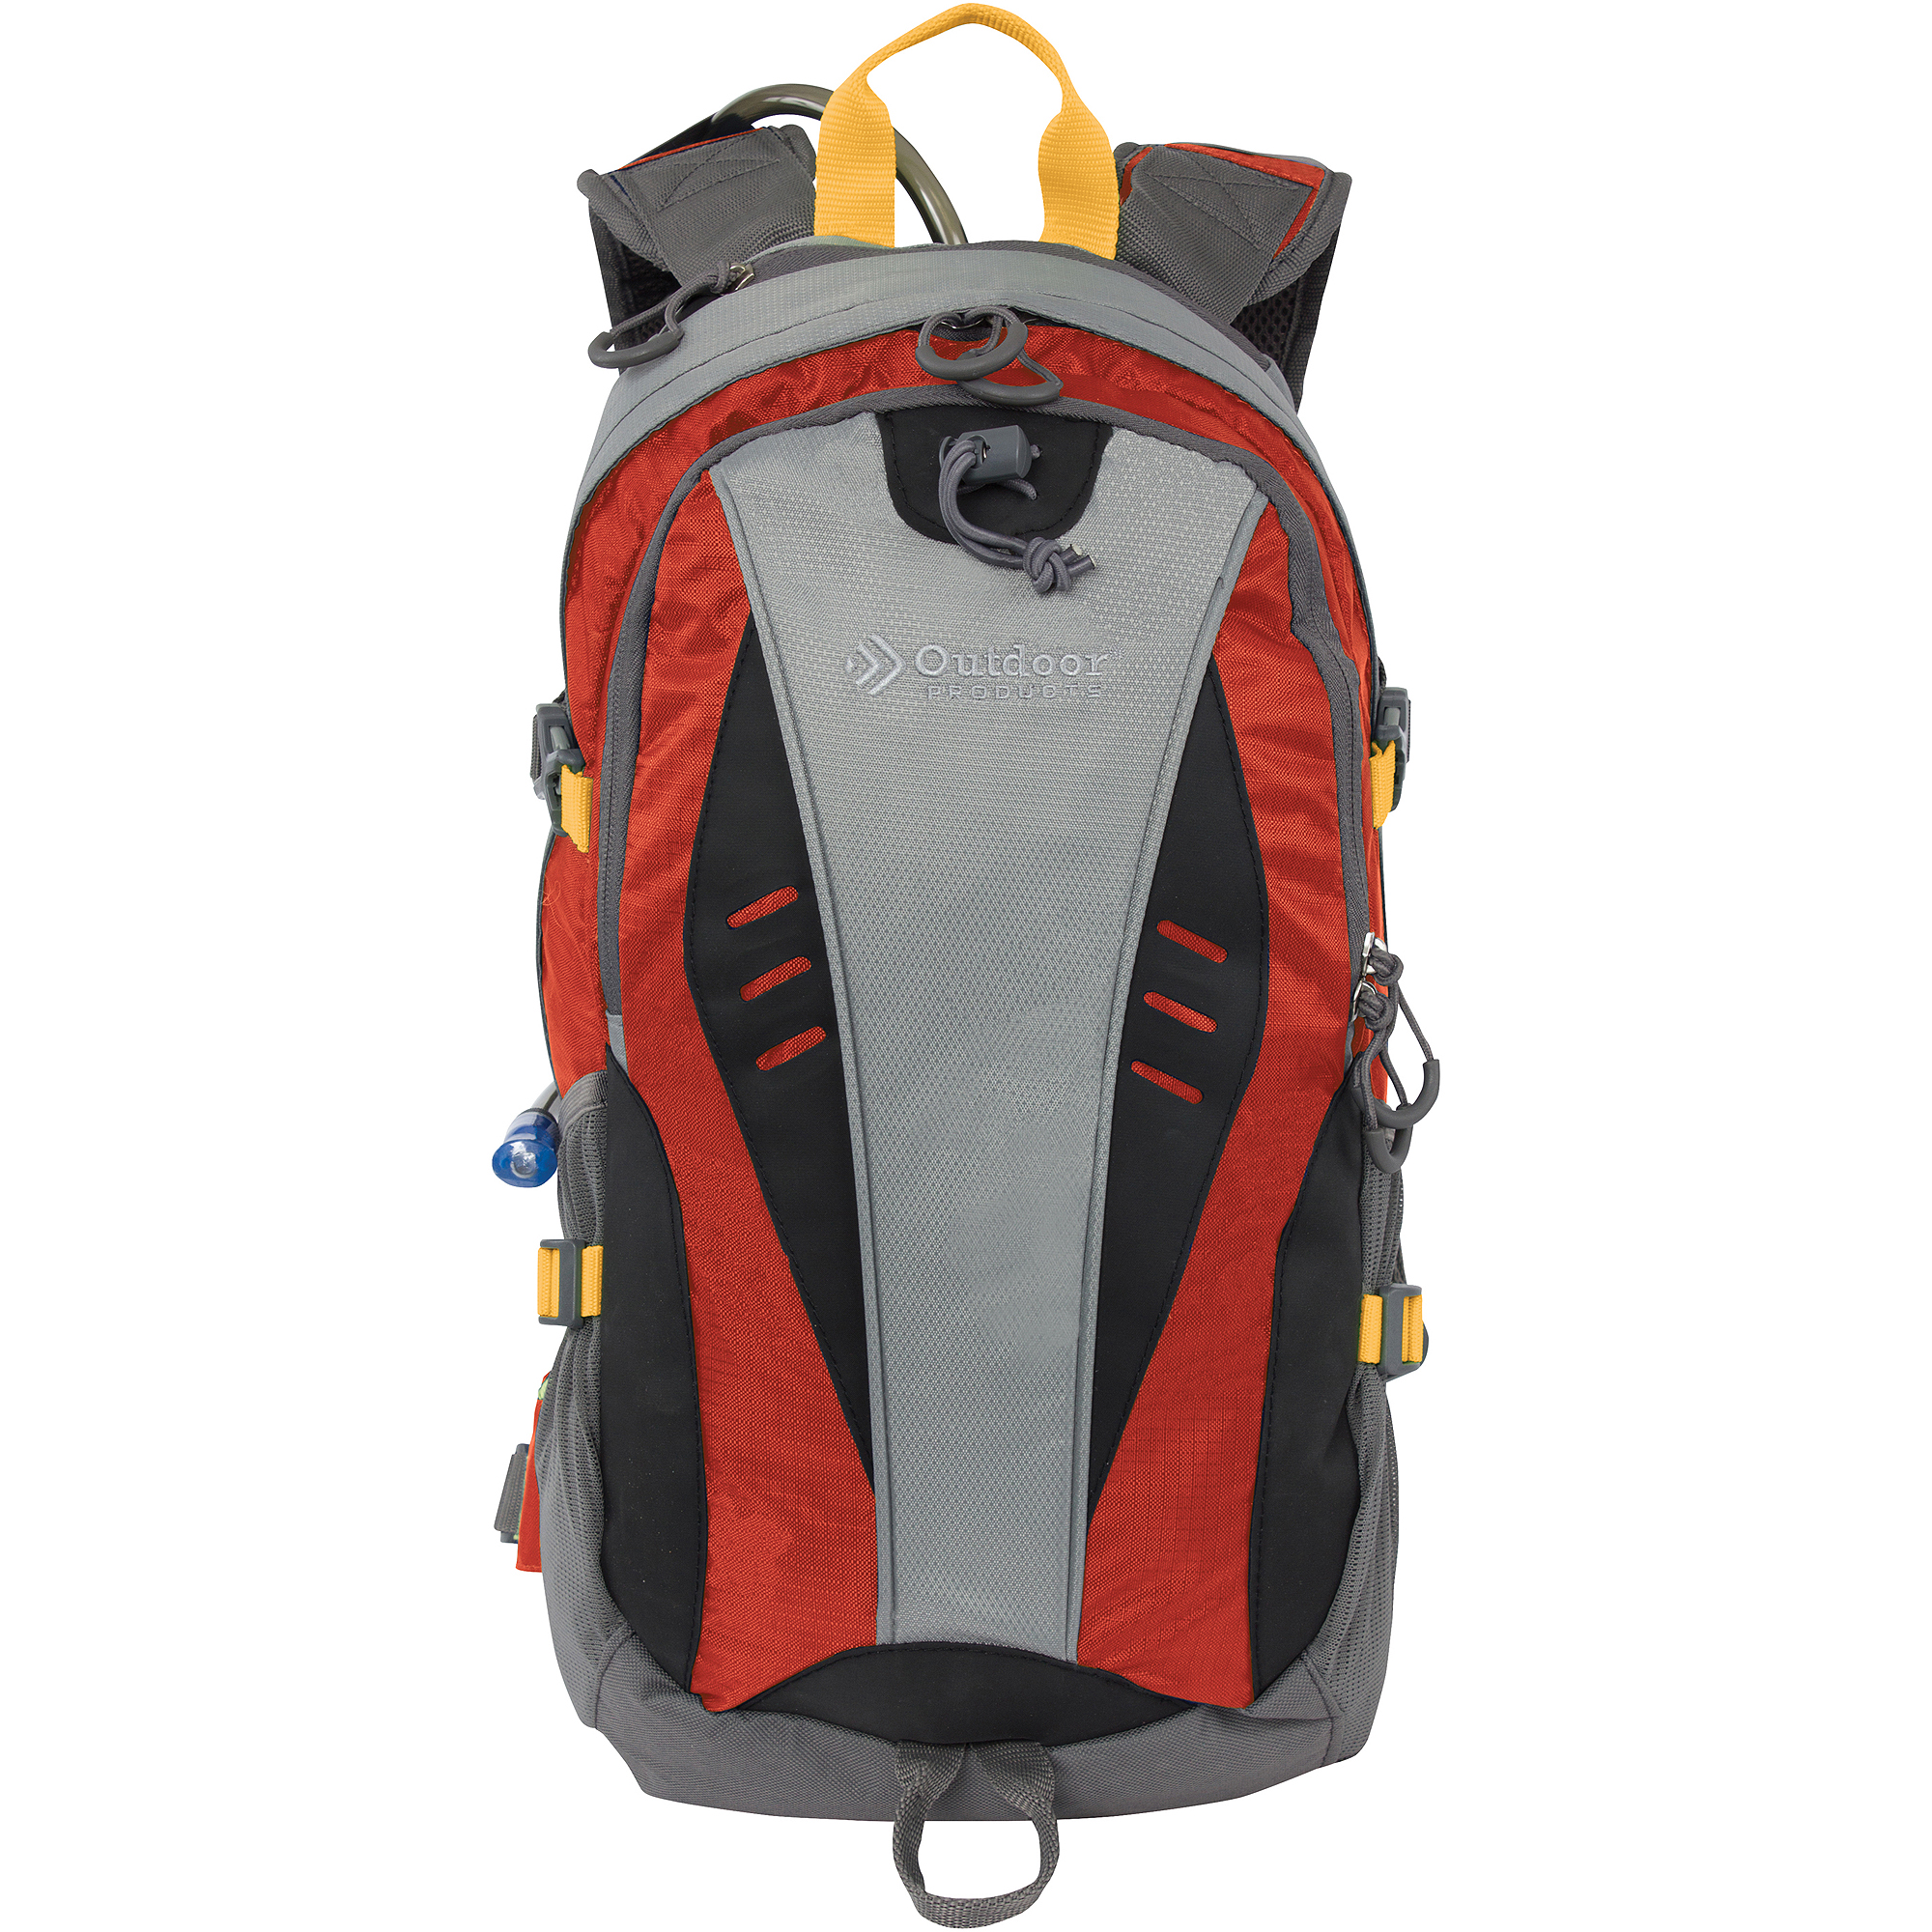 Outdoor Products Hydration Backpack, Red